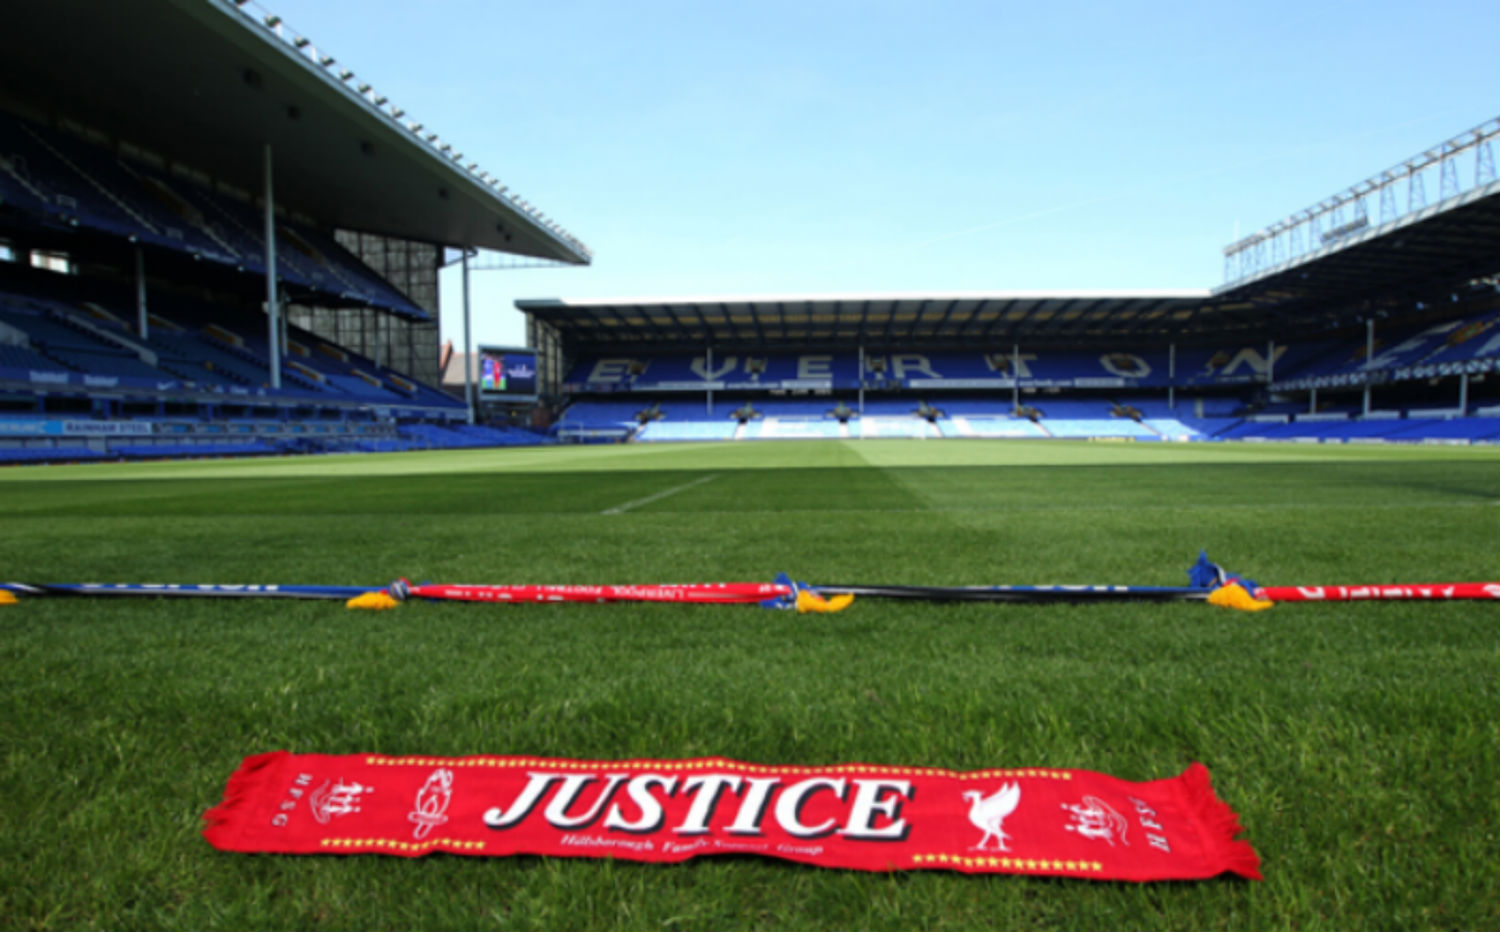 Scarves on the field at Goodison Park symbolize the unity between rivals Everton and Liverpool. (Press Association/AP)